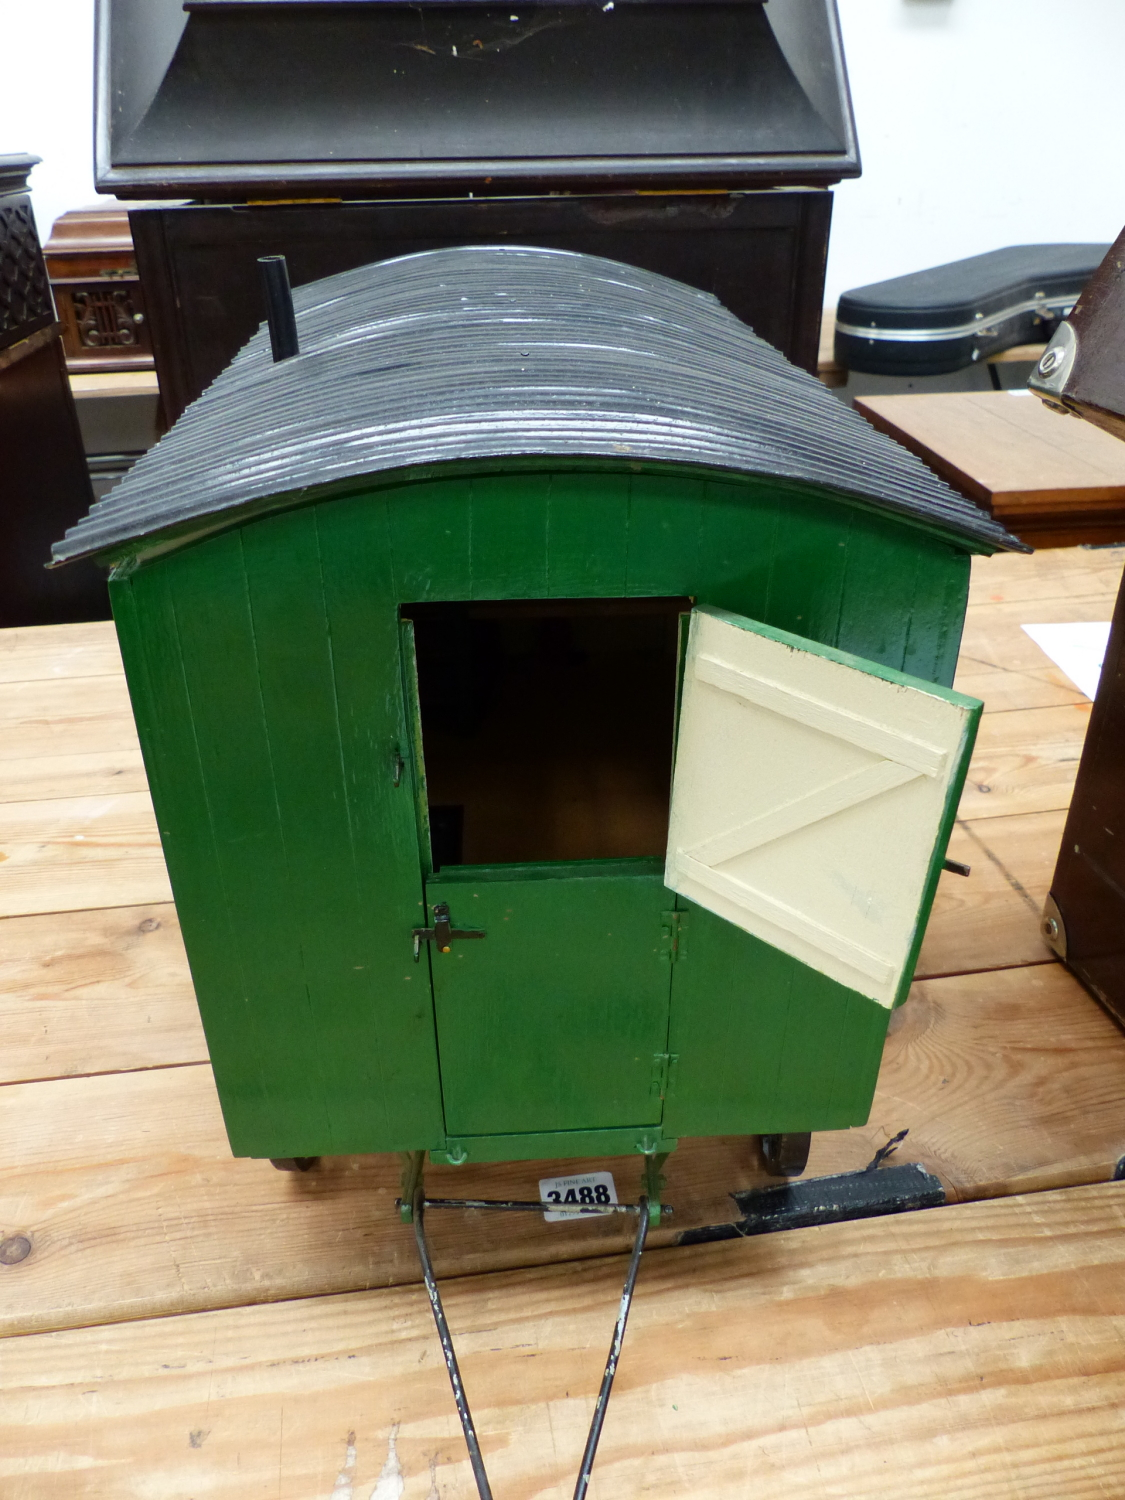 Lot 1301 - A SCALE MODEL GREEN PAINTED SHEPHERDS WAGON WITH BLACK WHEELS AND CORRUGATED IRON ROOF OVER A FITTED